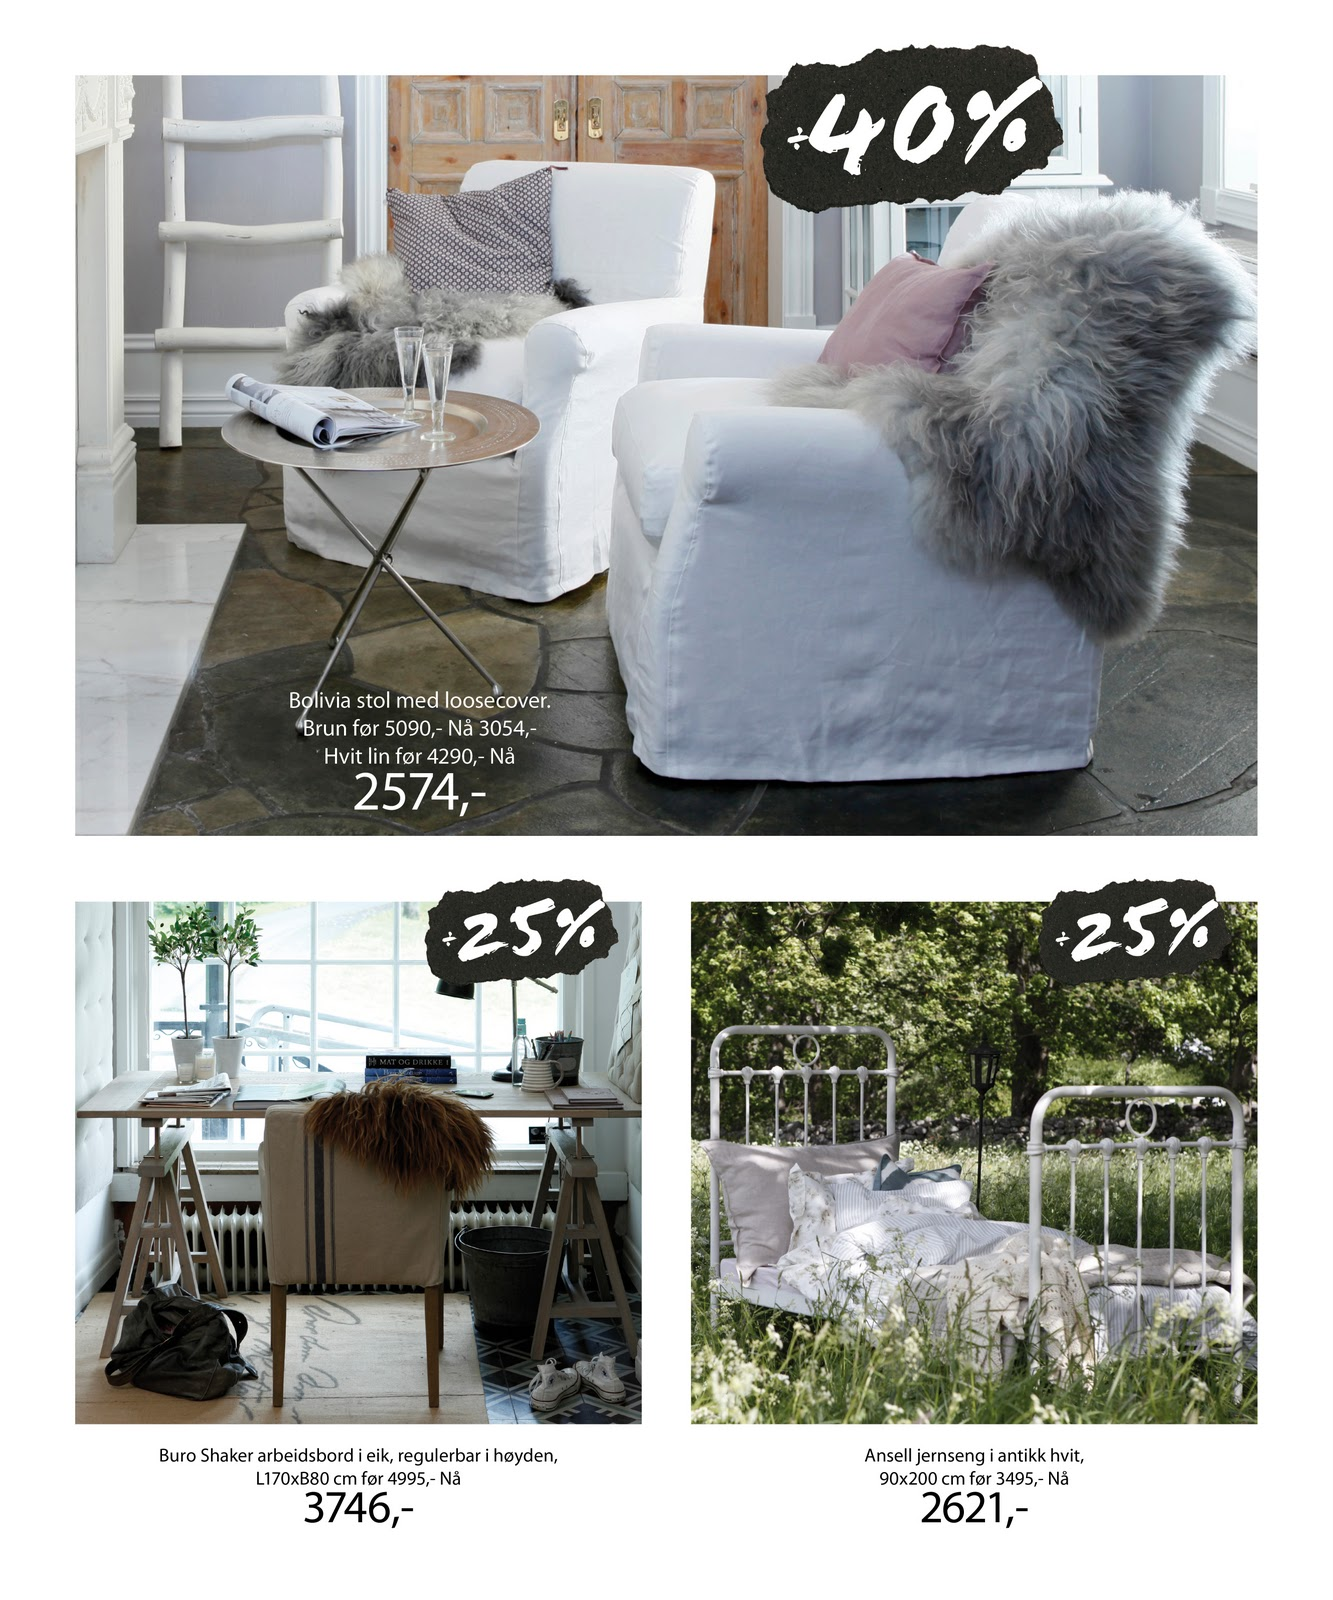 Blogg home and cottage: januar 2012